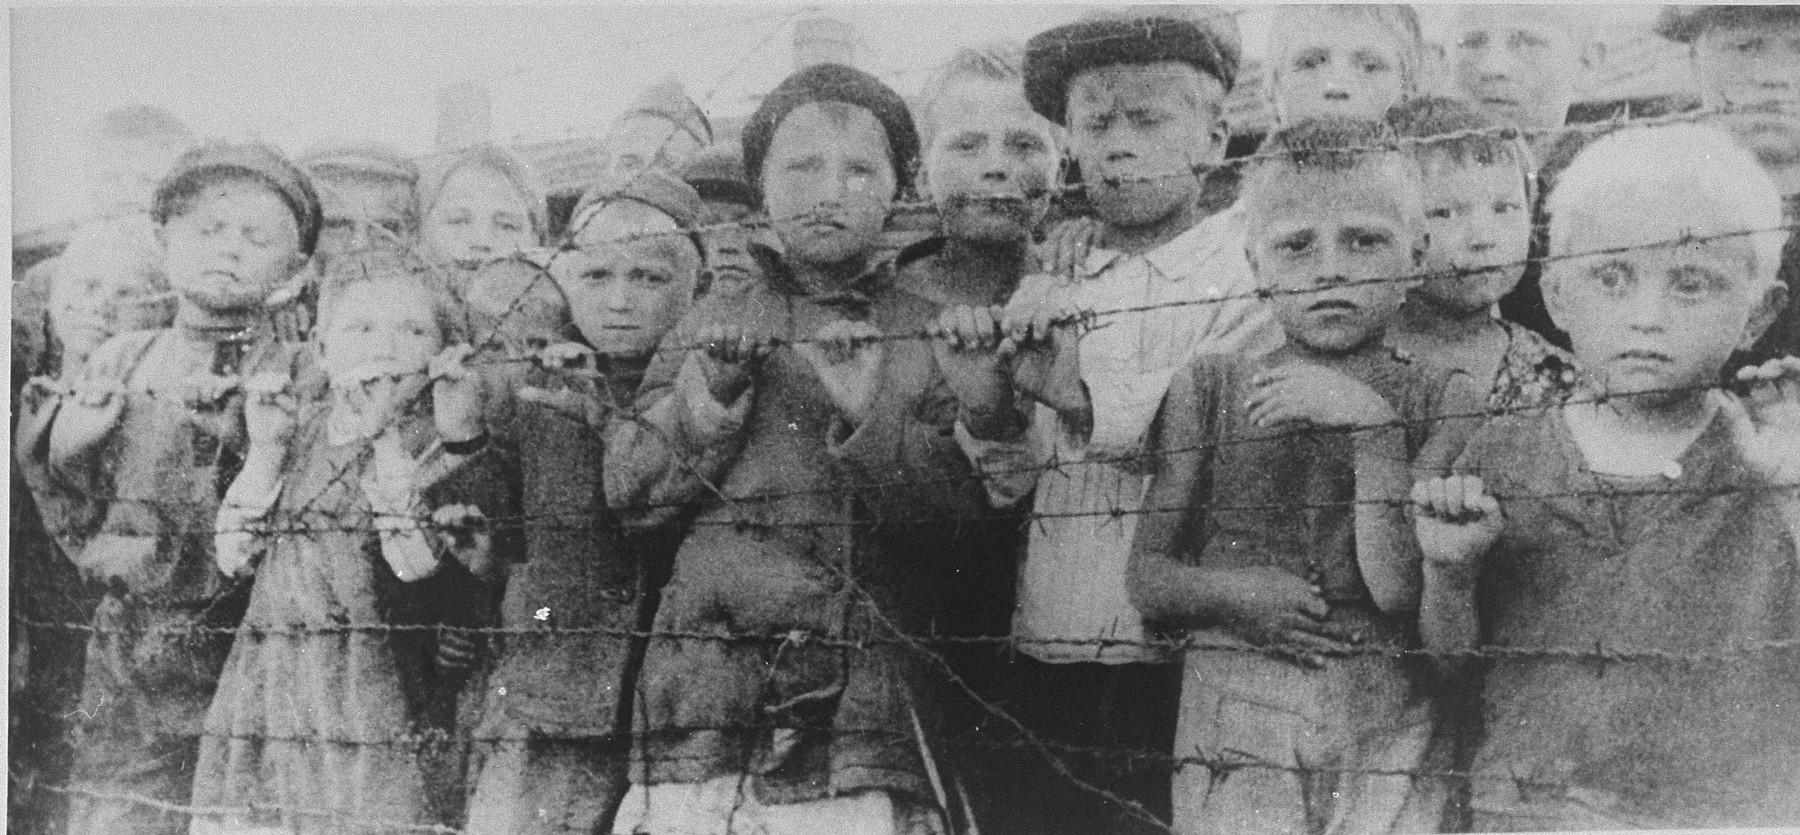 "Children taken from eastern Europe during the SS ""Heuaktion"" (Hay Action), and temporarily imprisoned in Auschwitz awaiting their transfer to Germany, look out from behind the barbed wire fence.  [The blonde boy at the lower right may be Kalman Cylberszac (b. 1934), the son of Rachel and Nachum Cylberszac from Lask, Poland.]"